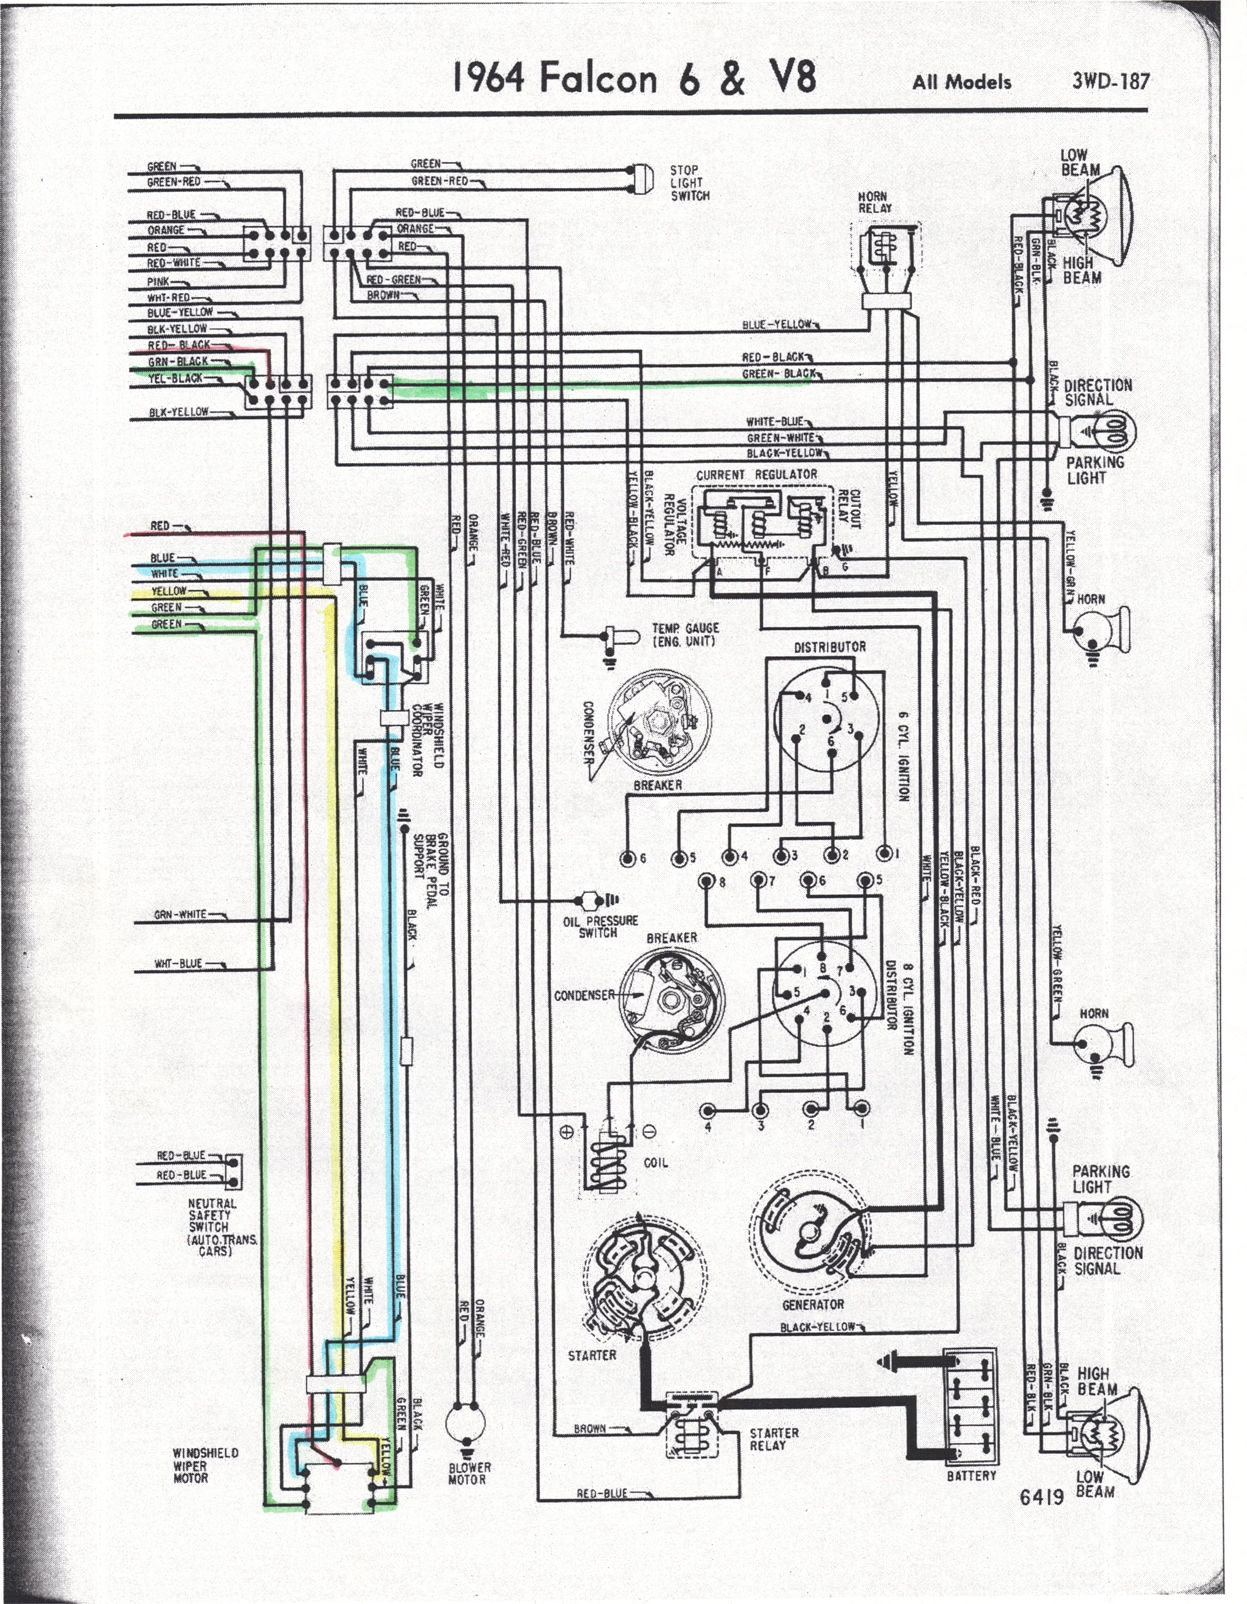 Wiring Diagram For 1961 Ford Falcon - Box Wiring Diagram on amc amx wiring diagrams, chrysler lebaron wiring diagrams, volvo 240 wiring diagrams, dodge dakota wiring diagrams, jeep wrangler wiring diagrams, imperial wiring diagrams, ford ranchero seats, peterbilt wiring diagrams, ford ranchero engine, oldsmobile alero wiring diagrams, mercury sable wiring diagrams, ford ranchero parts, jeep cj wiring diagrams, dodge ramcharger wiring diagrams, jeep patriot wiring diagrams, pontiac grand prix wiring diagrams, oldsmobile 98 wiring diagrams, plymouth barracuda wiring diagrams, chrysler concorde wiring diagrams, saab 9-3 wiring diagrams,